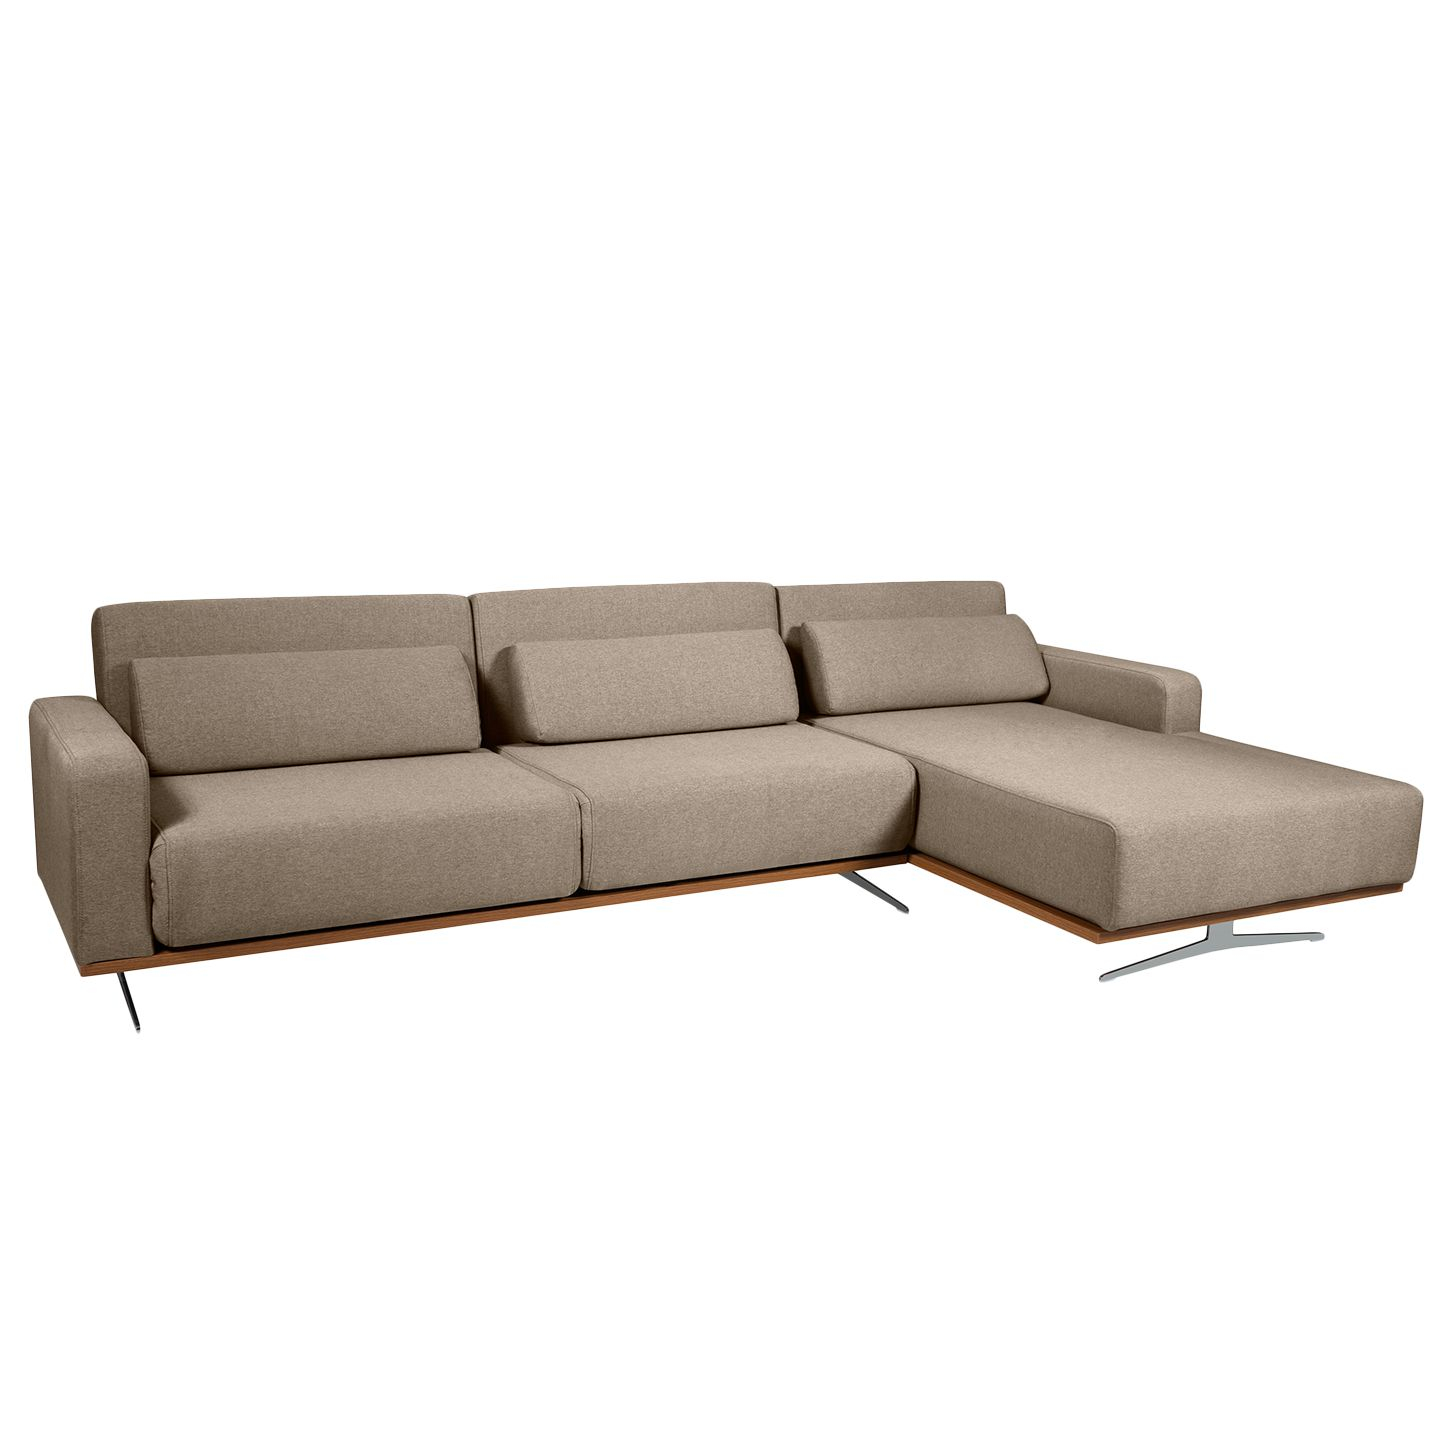 Ecksofa copperfield ii mit schlaffunktion webstoff for Ecksofa stoff beige